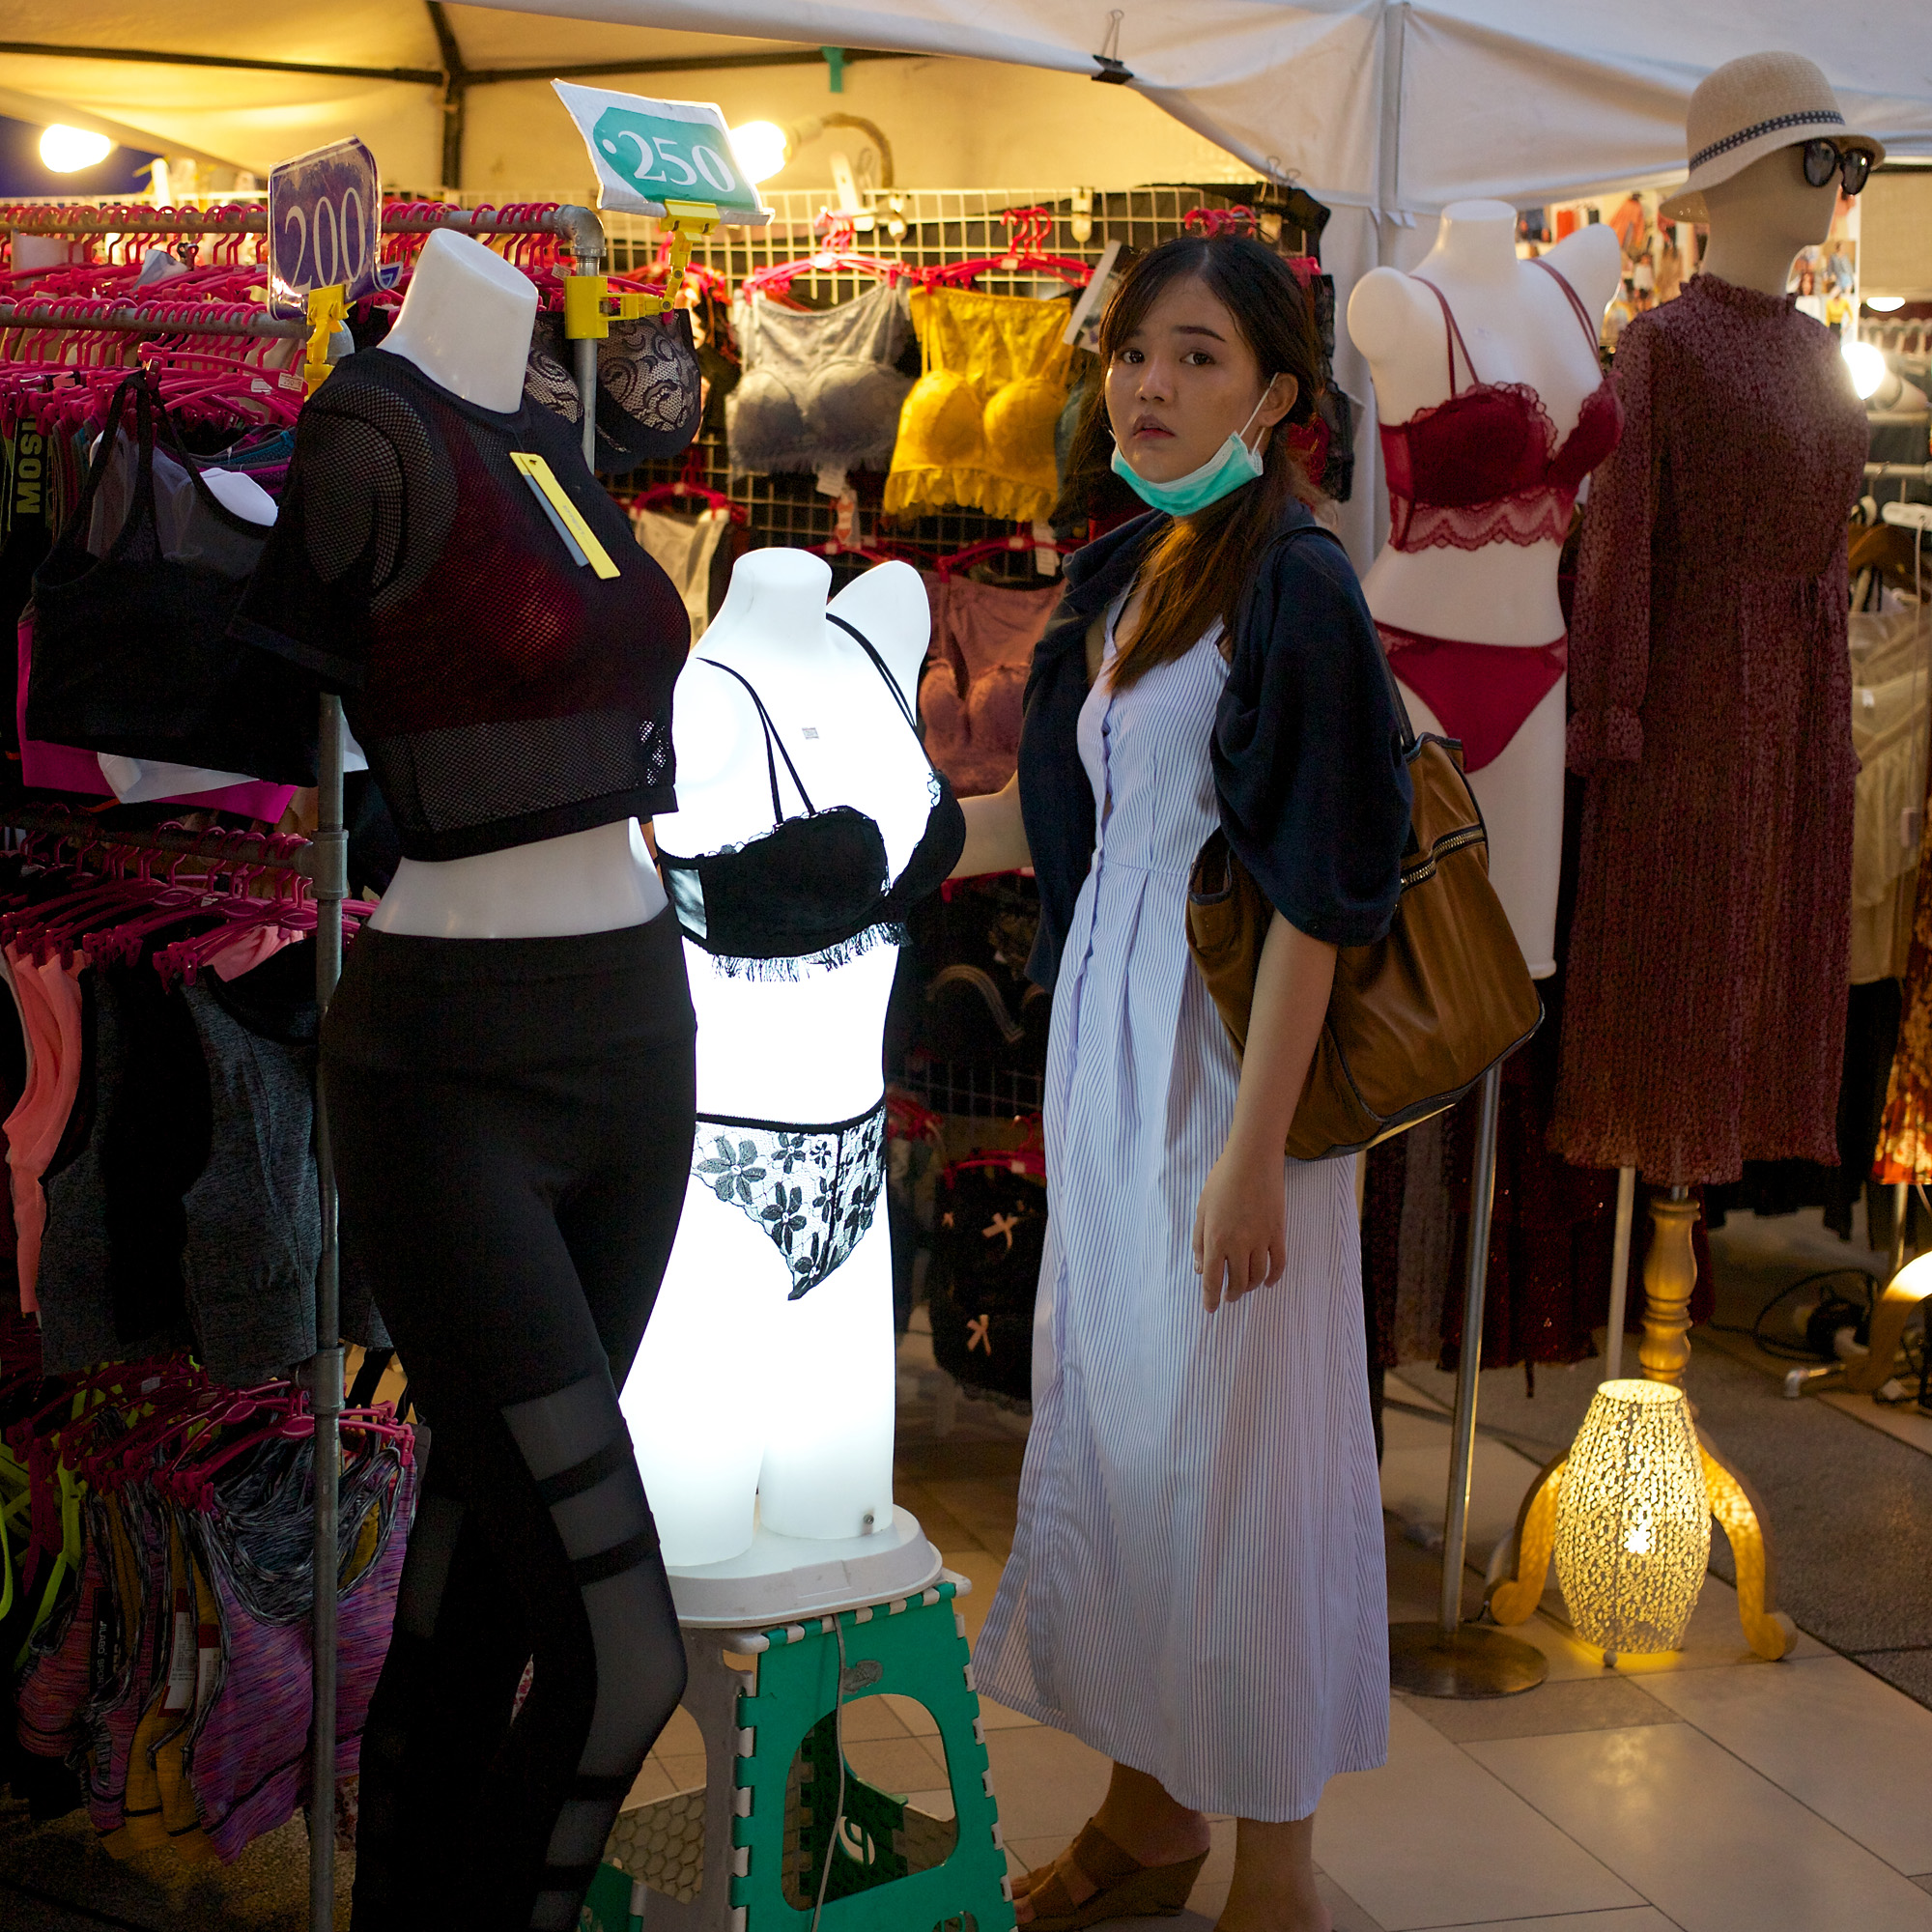 young woman with mask under chin, standing in front of an illuminated underwear mannequin